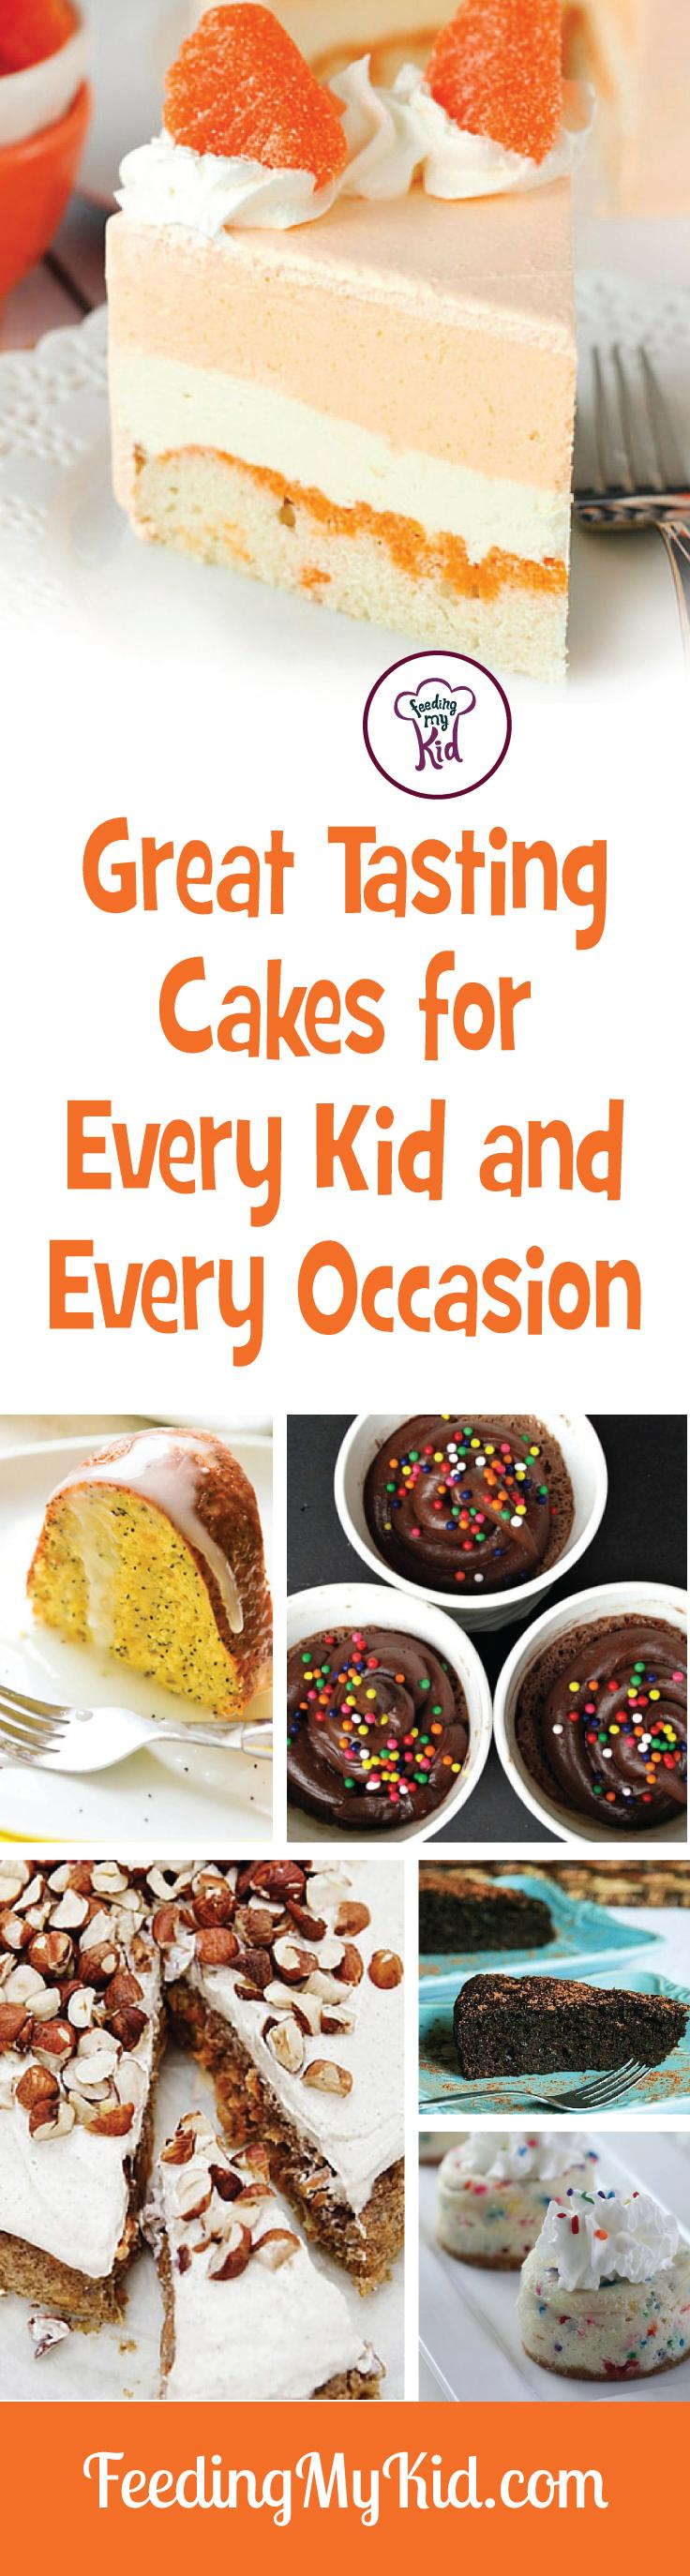 These cake recipes are perfect for tons of celebrations! You can replace sugar with healthier sugar alternatives to make these even healthier.